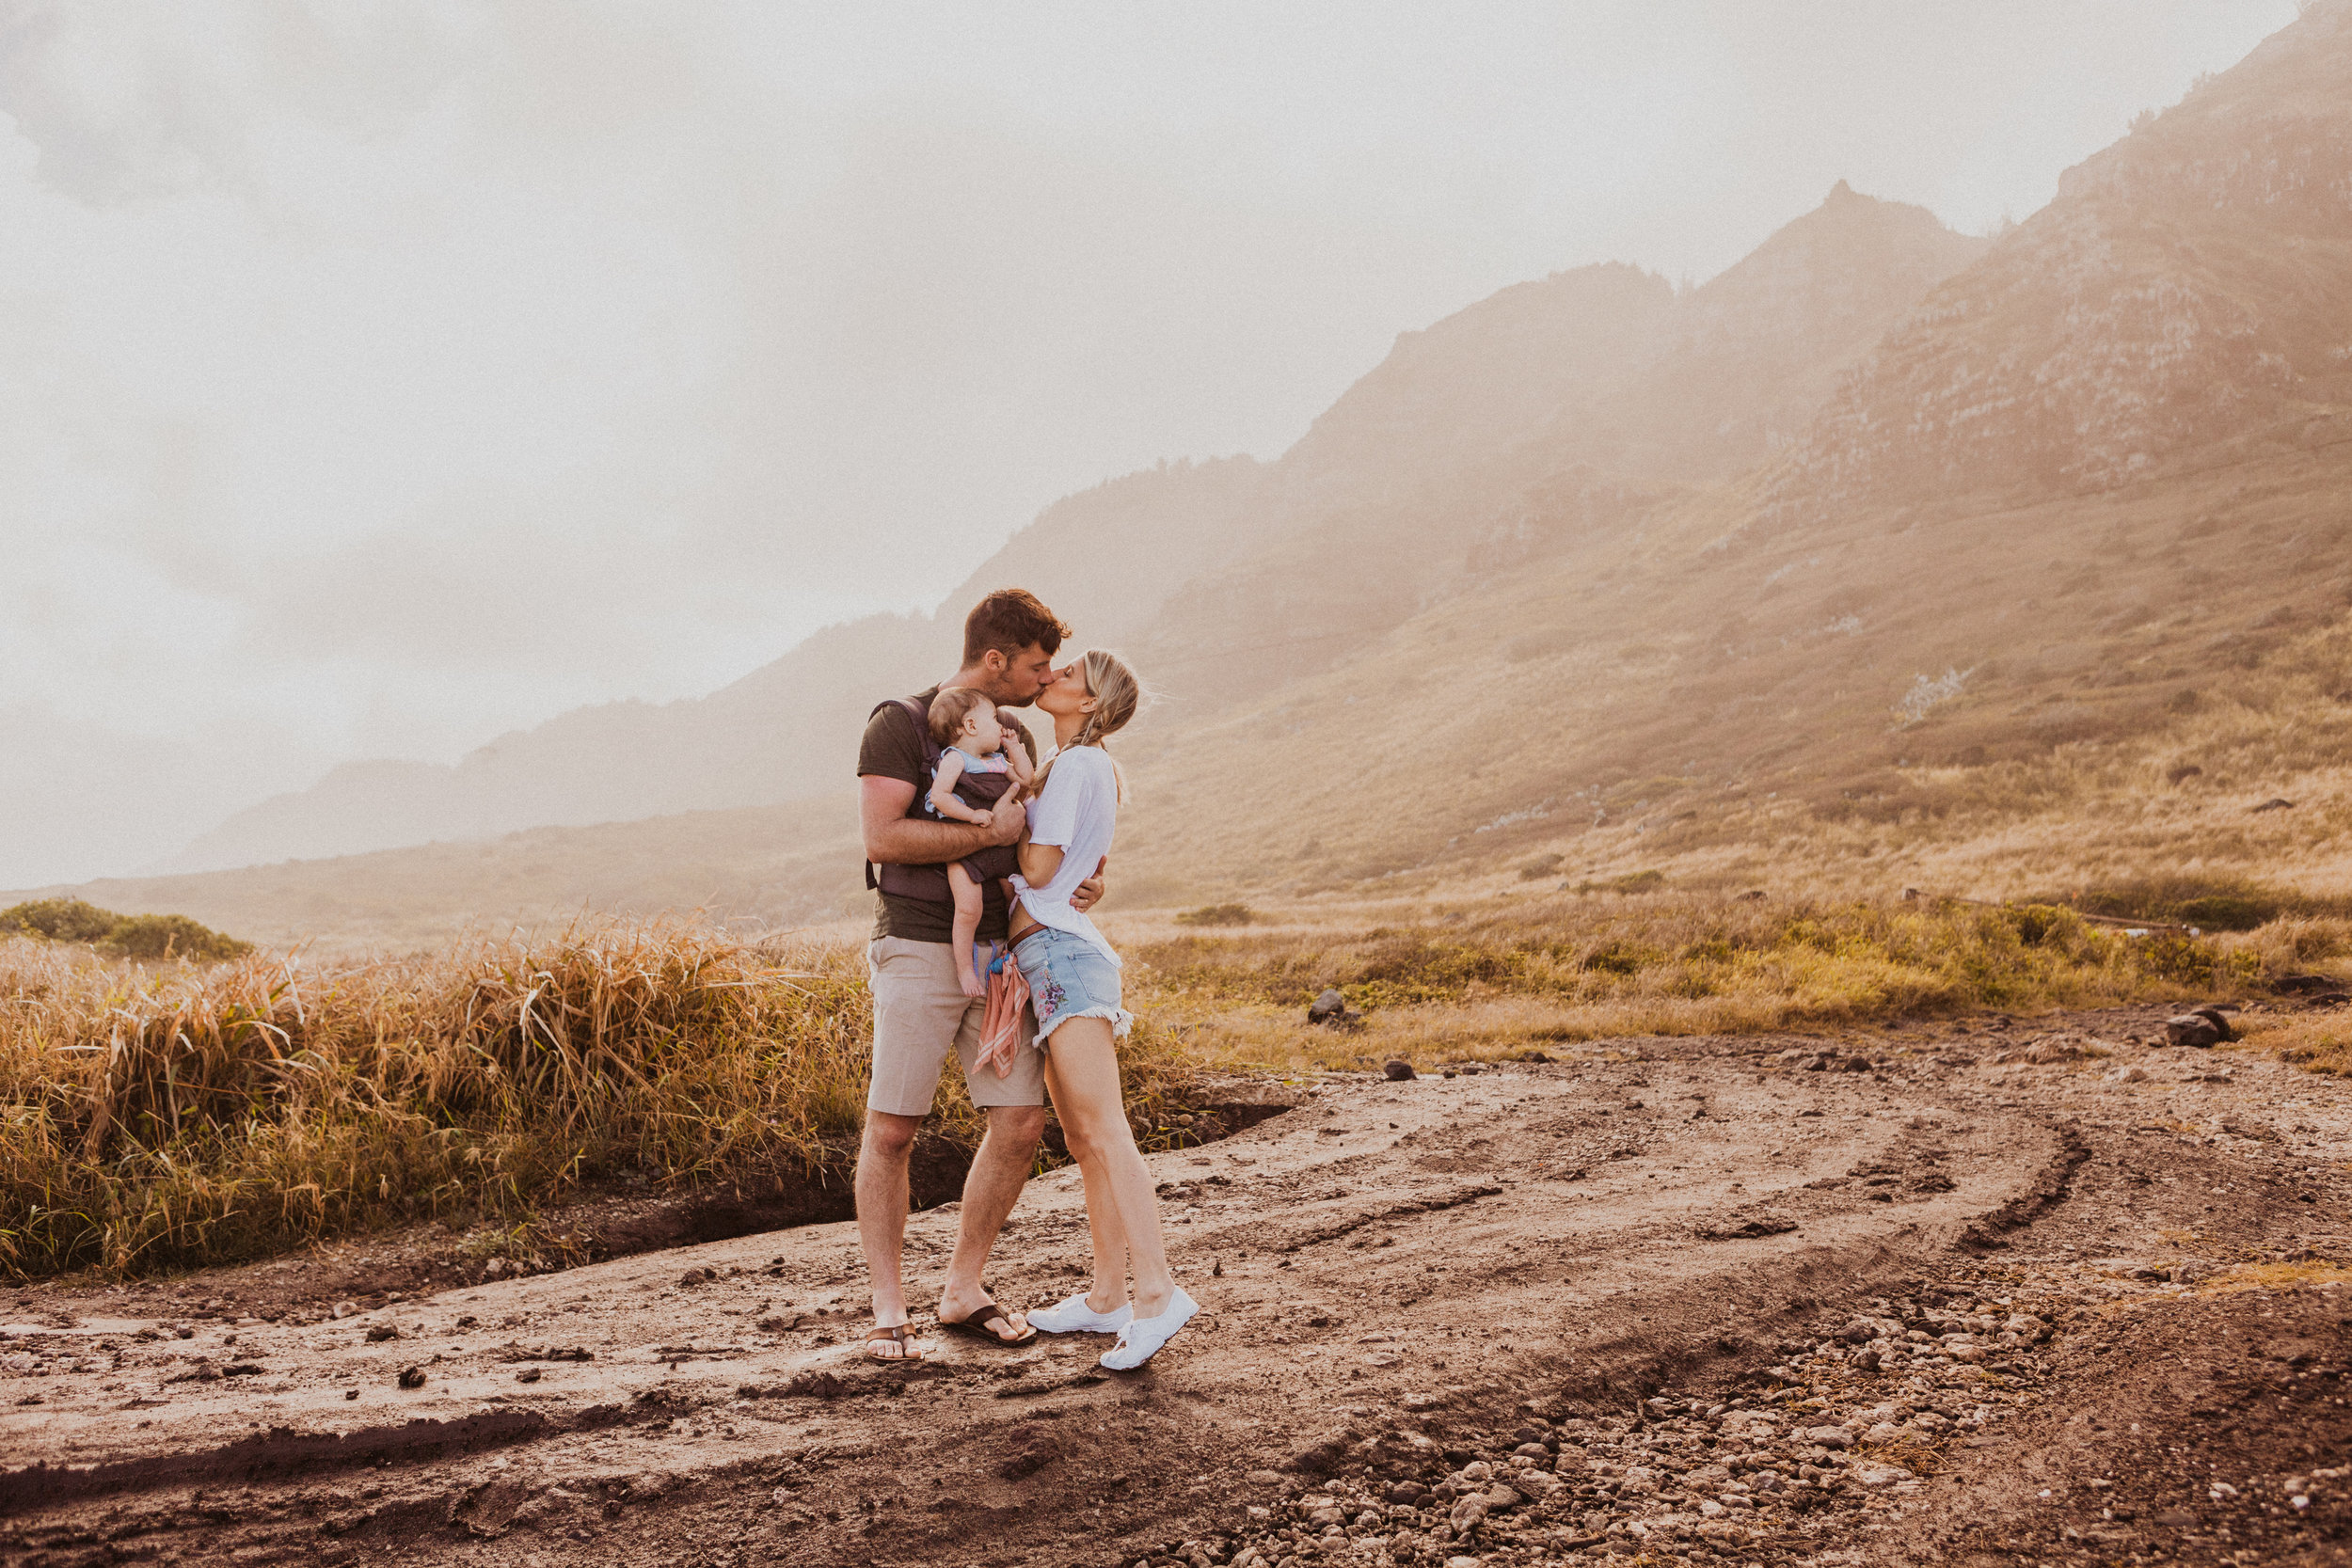 adventuring in hawaii as a family